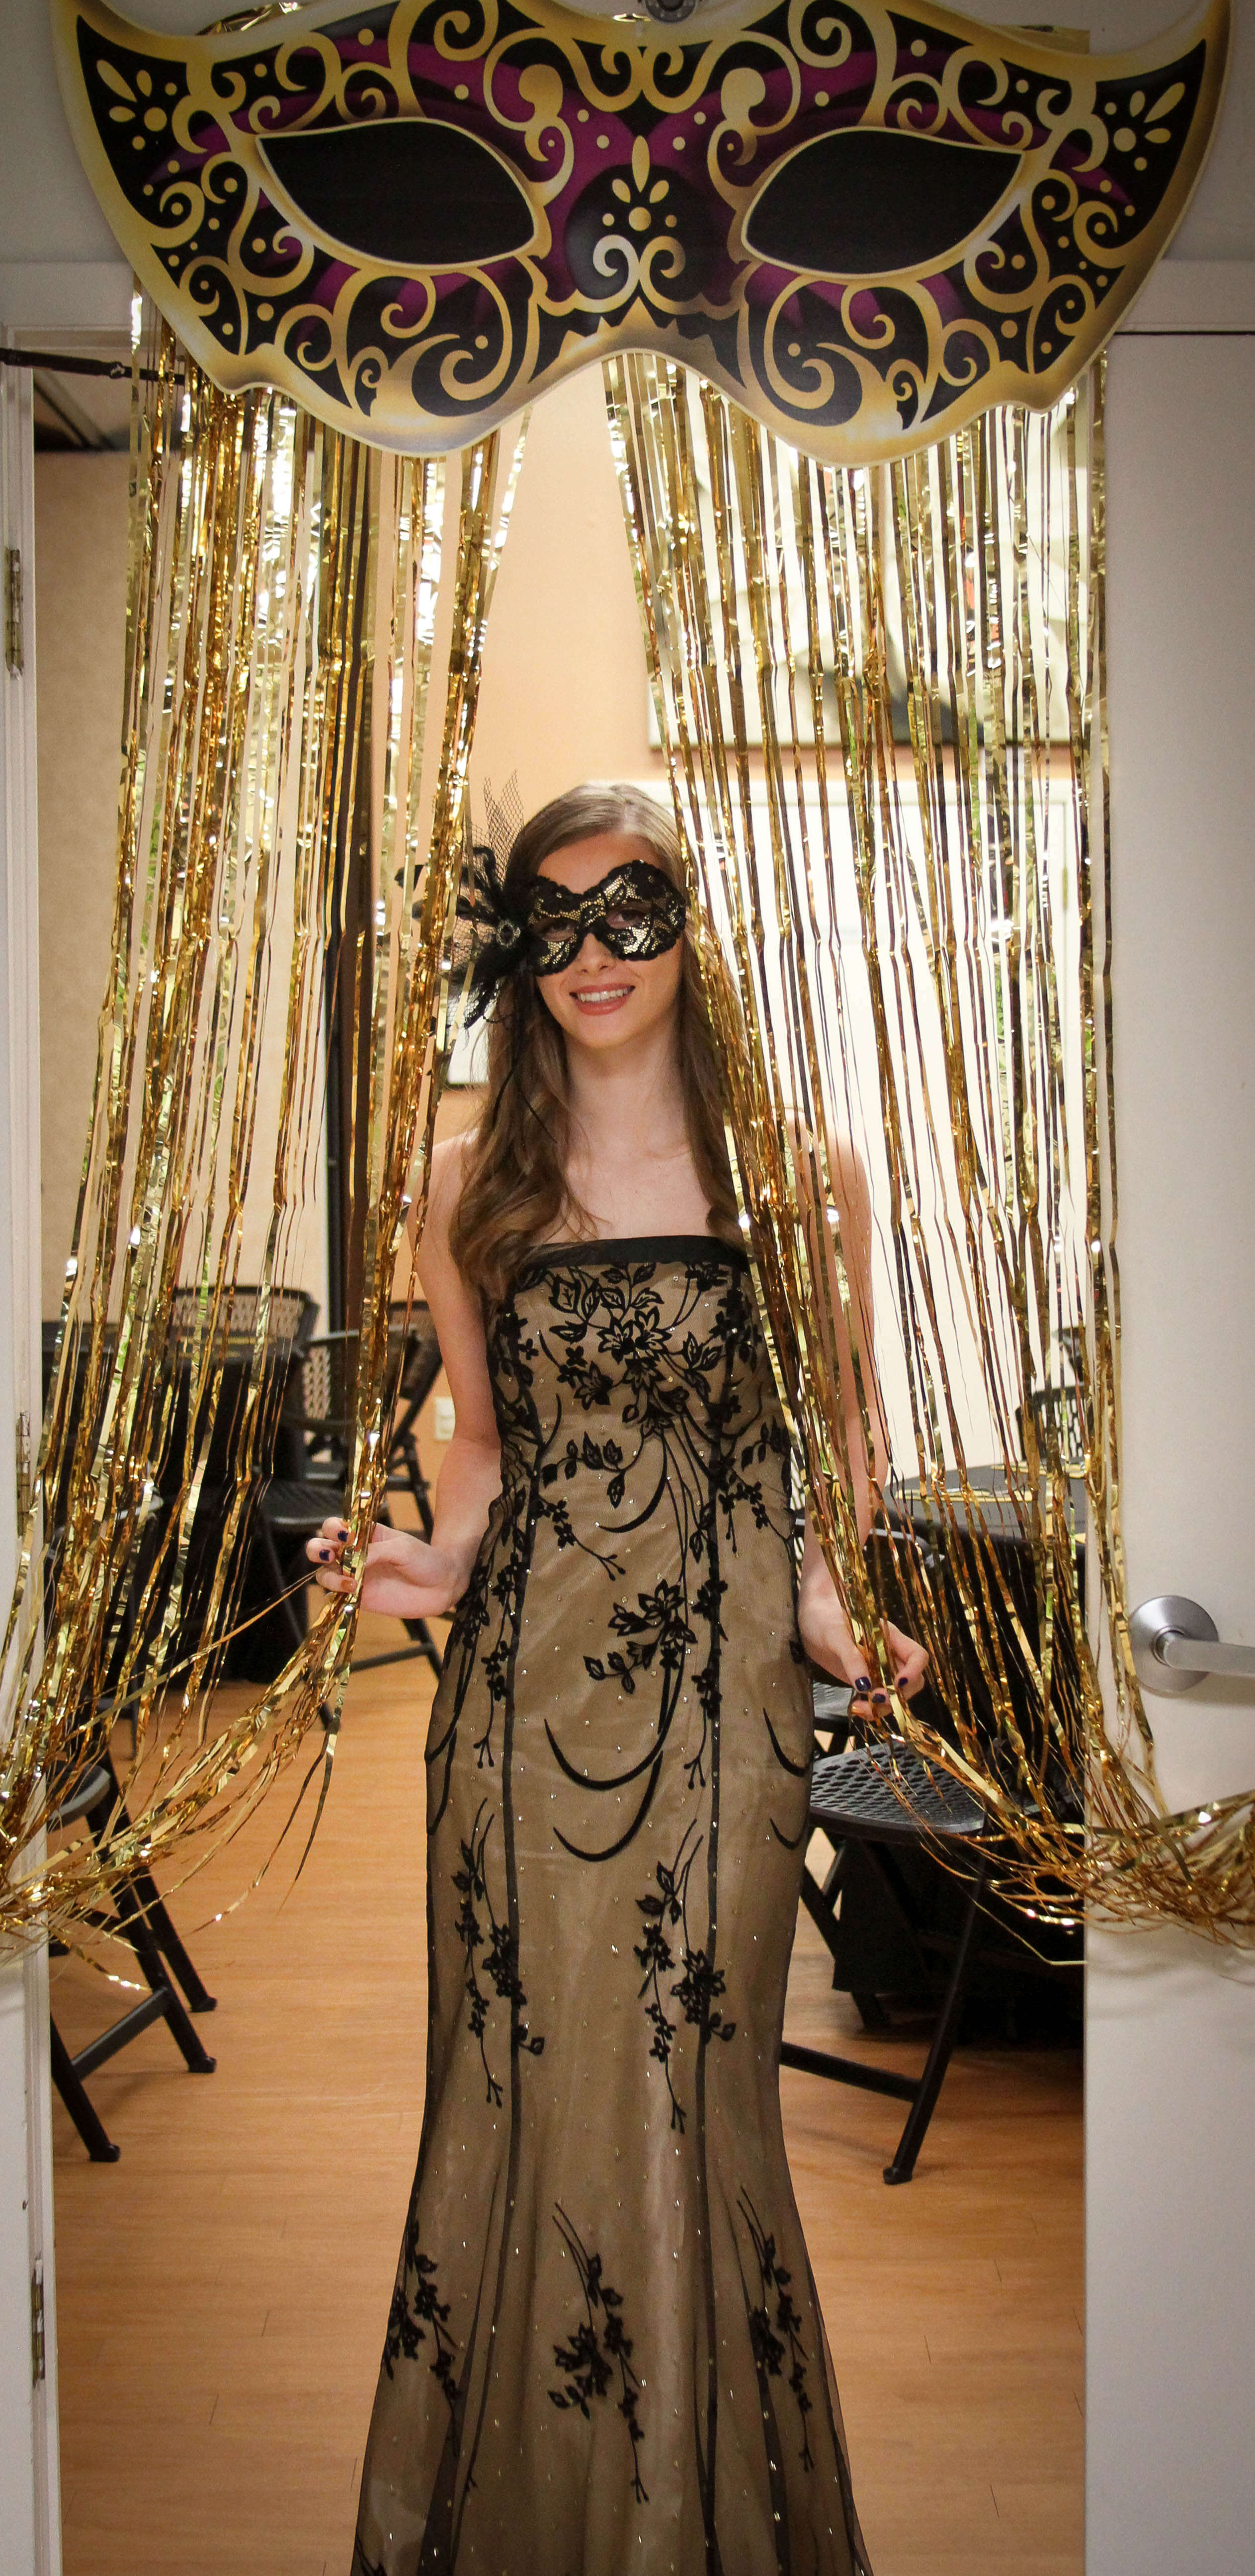 black and gold dress, black and gold mask with gold streamers